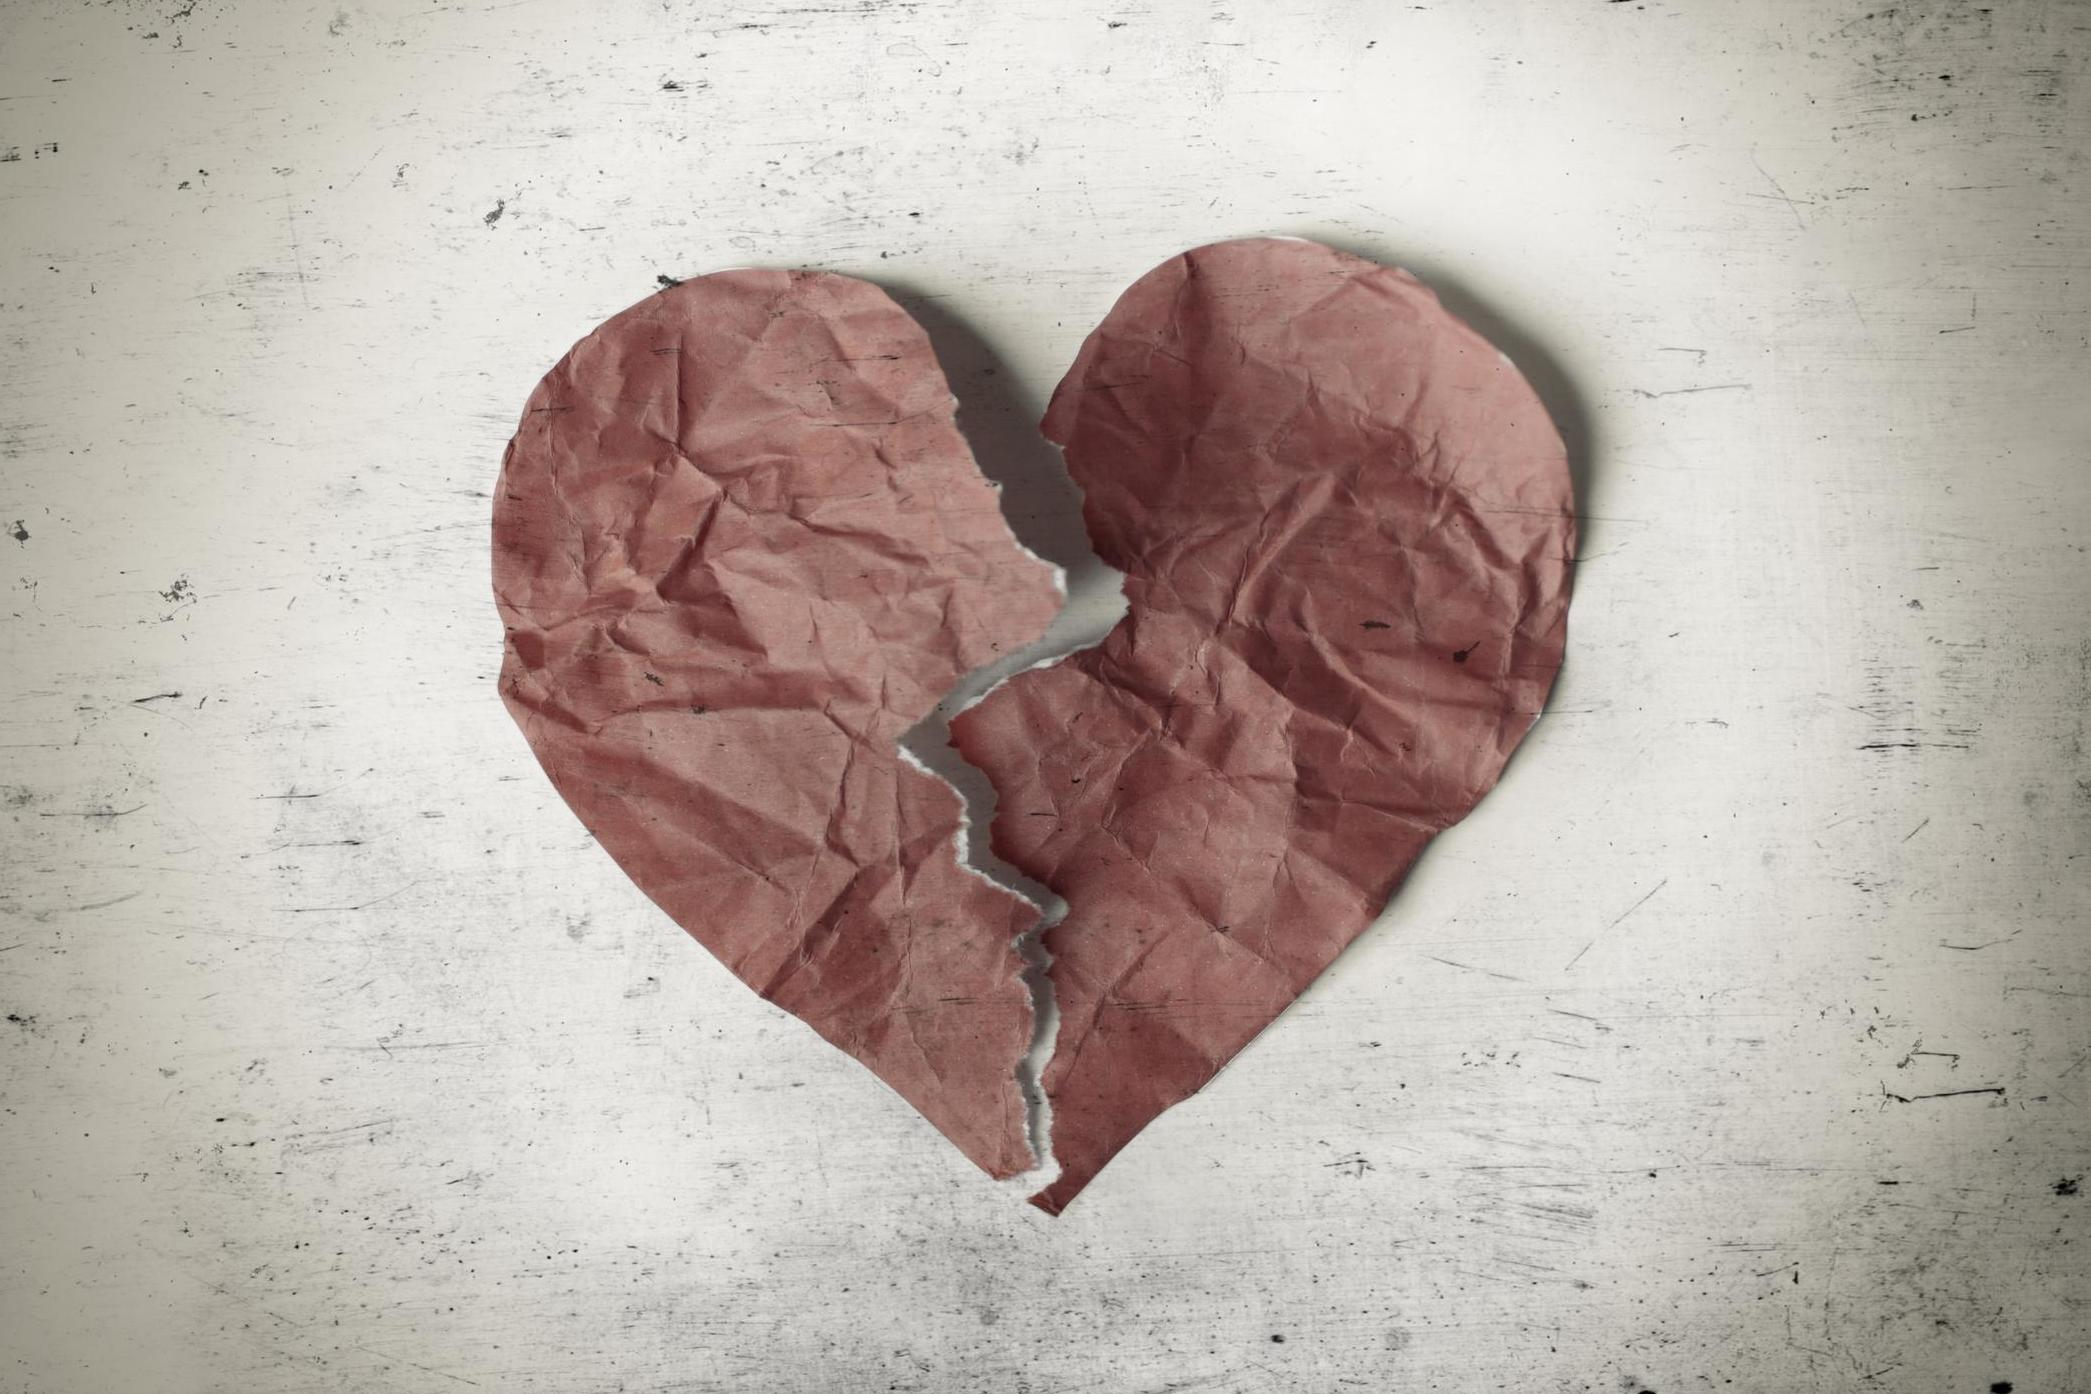 Broken Heart Can Cause Same Type Of Long-lasting Damage As